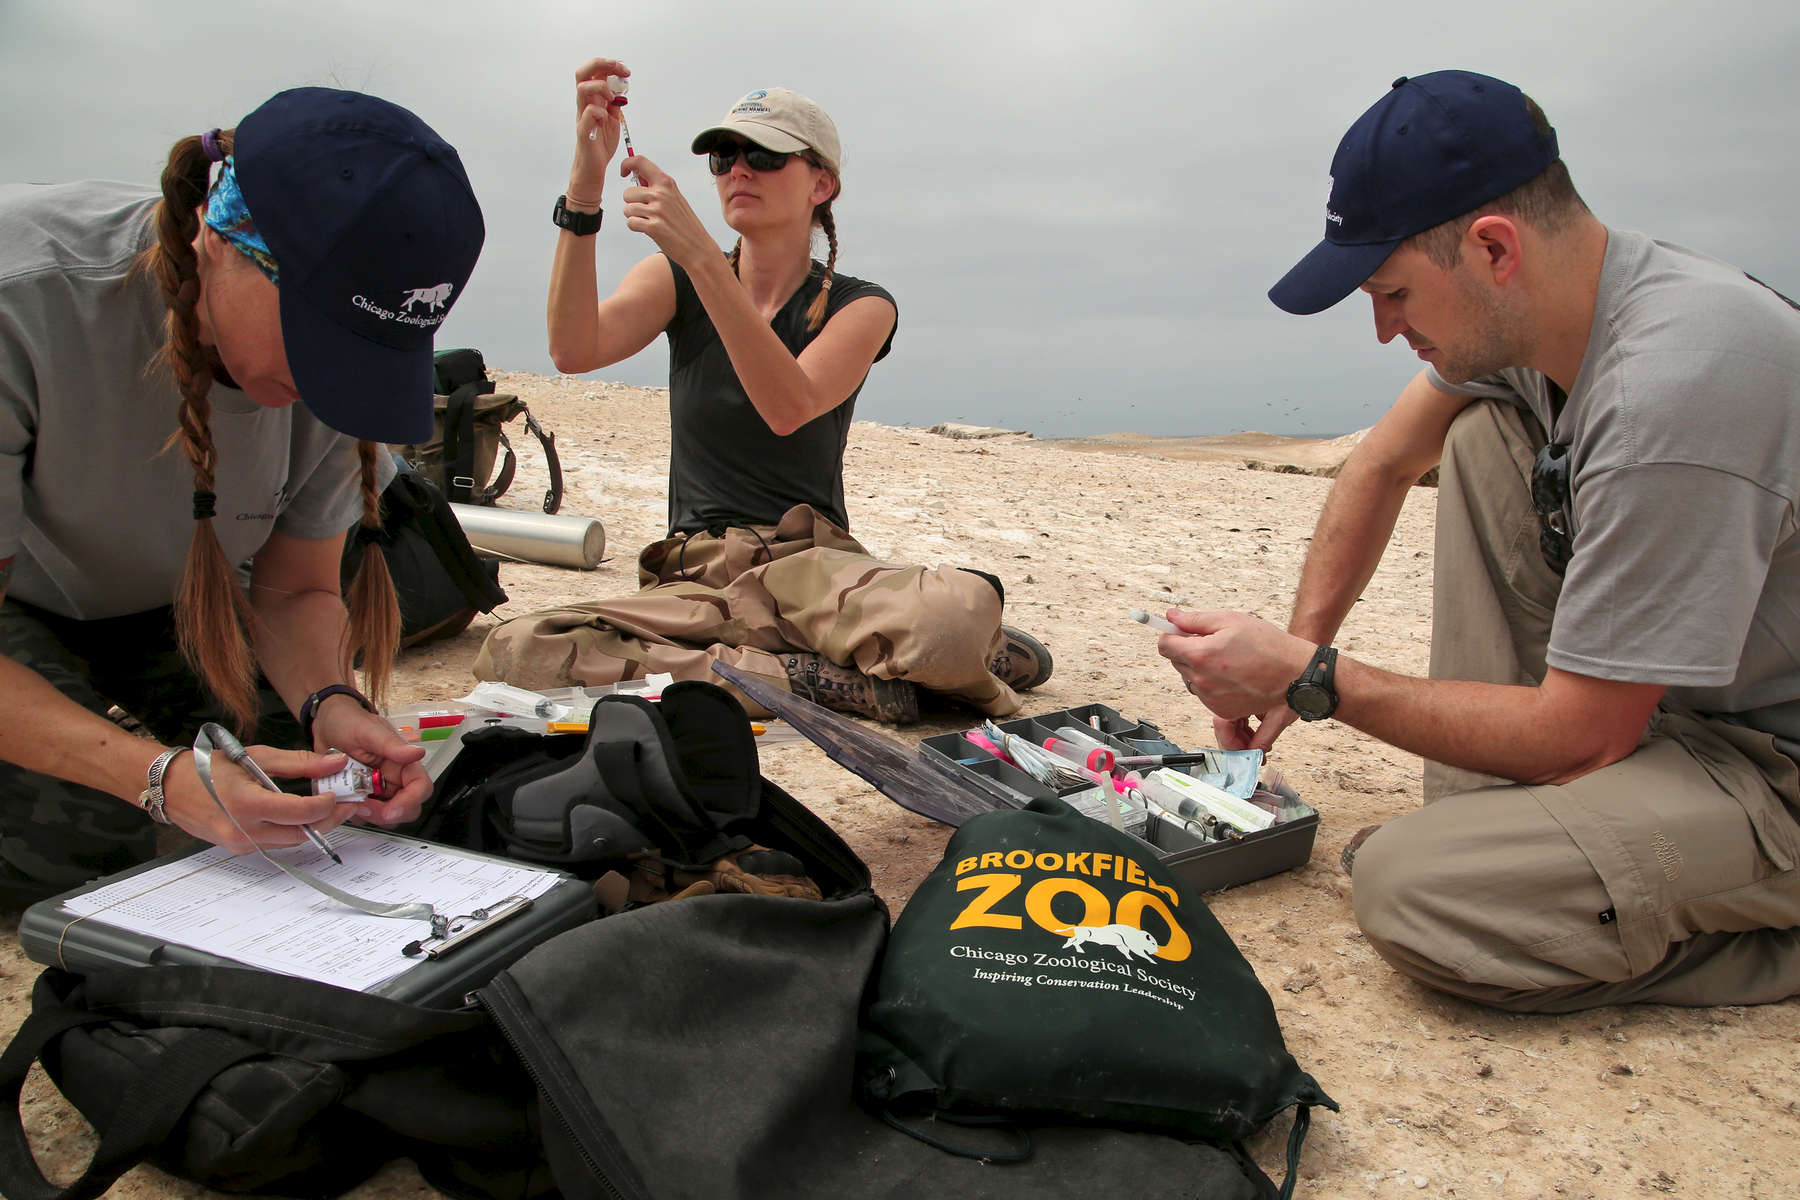 MaryAnn Duda, a veterinary technician for the Brookfield Zoo, at left, Dr. Jenny Meegan, a veterinarian at National Marine Mammal Foundation, in San Diego, at center, and Dr. Michael Adkesson, vice president of clinical medicine at the Brookfield Zoo, at right, draw up medications to tranquilize South American sea lions so the team can collect body samples and measurements to assess the animals' health.